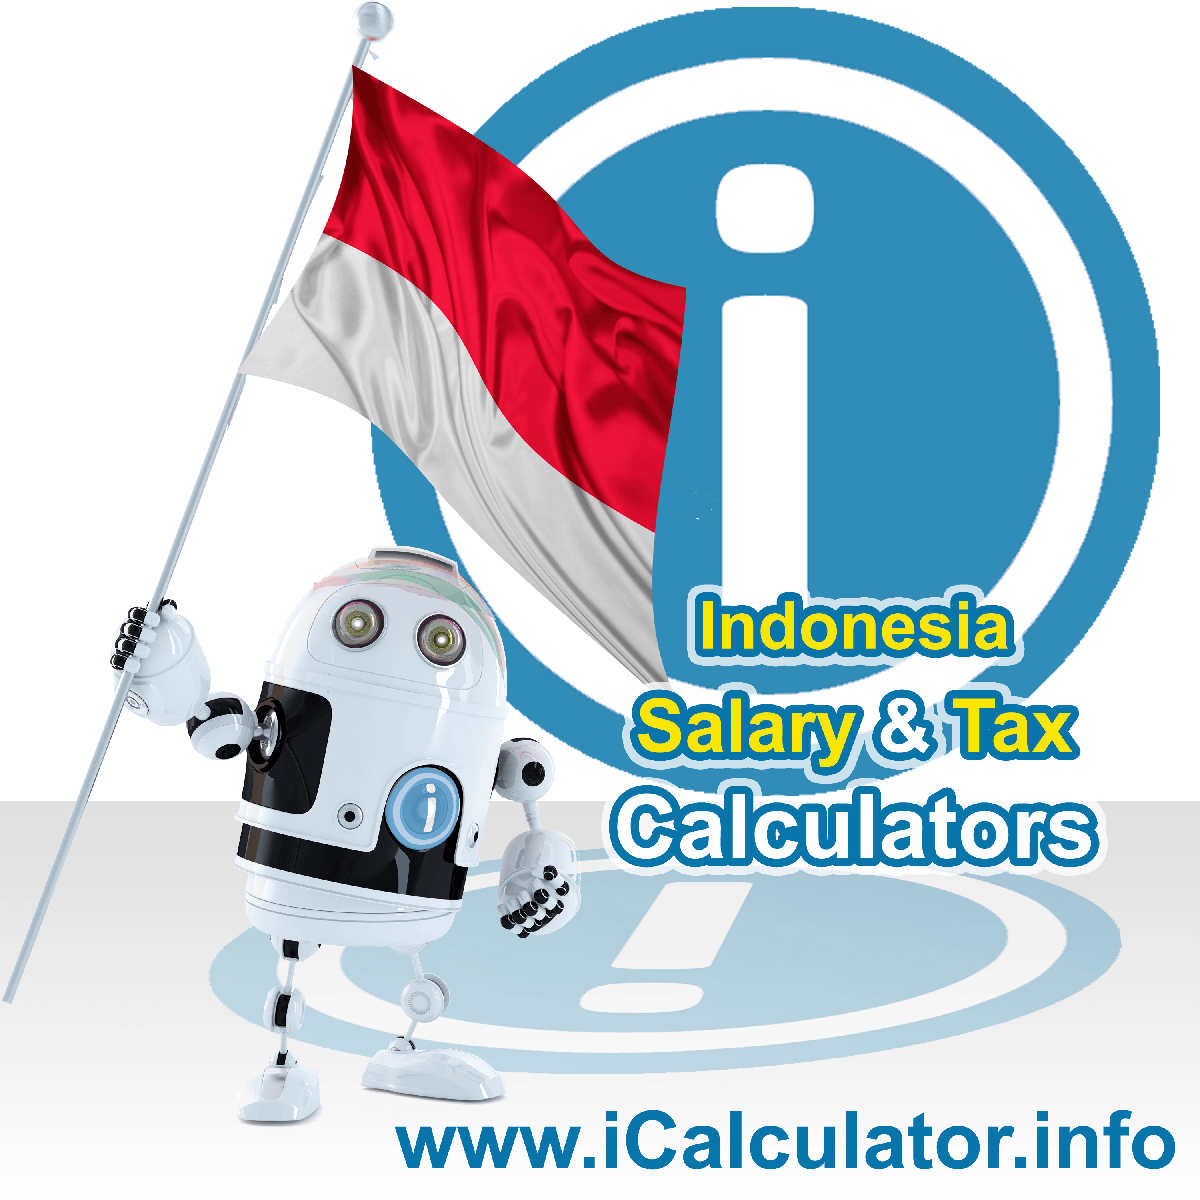 Indonesia Salary Calculator. This image shows the Indonesiaese flag and information relating to the tax formula for the Indonesia Tax Calculator